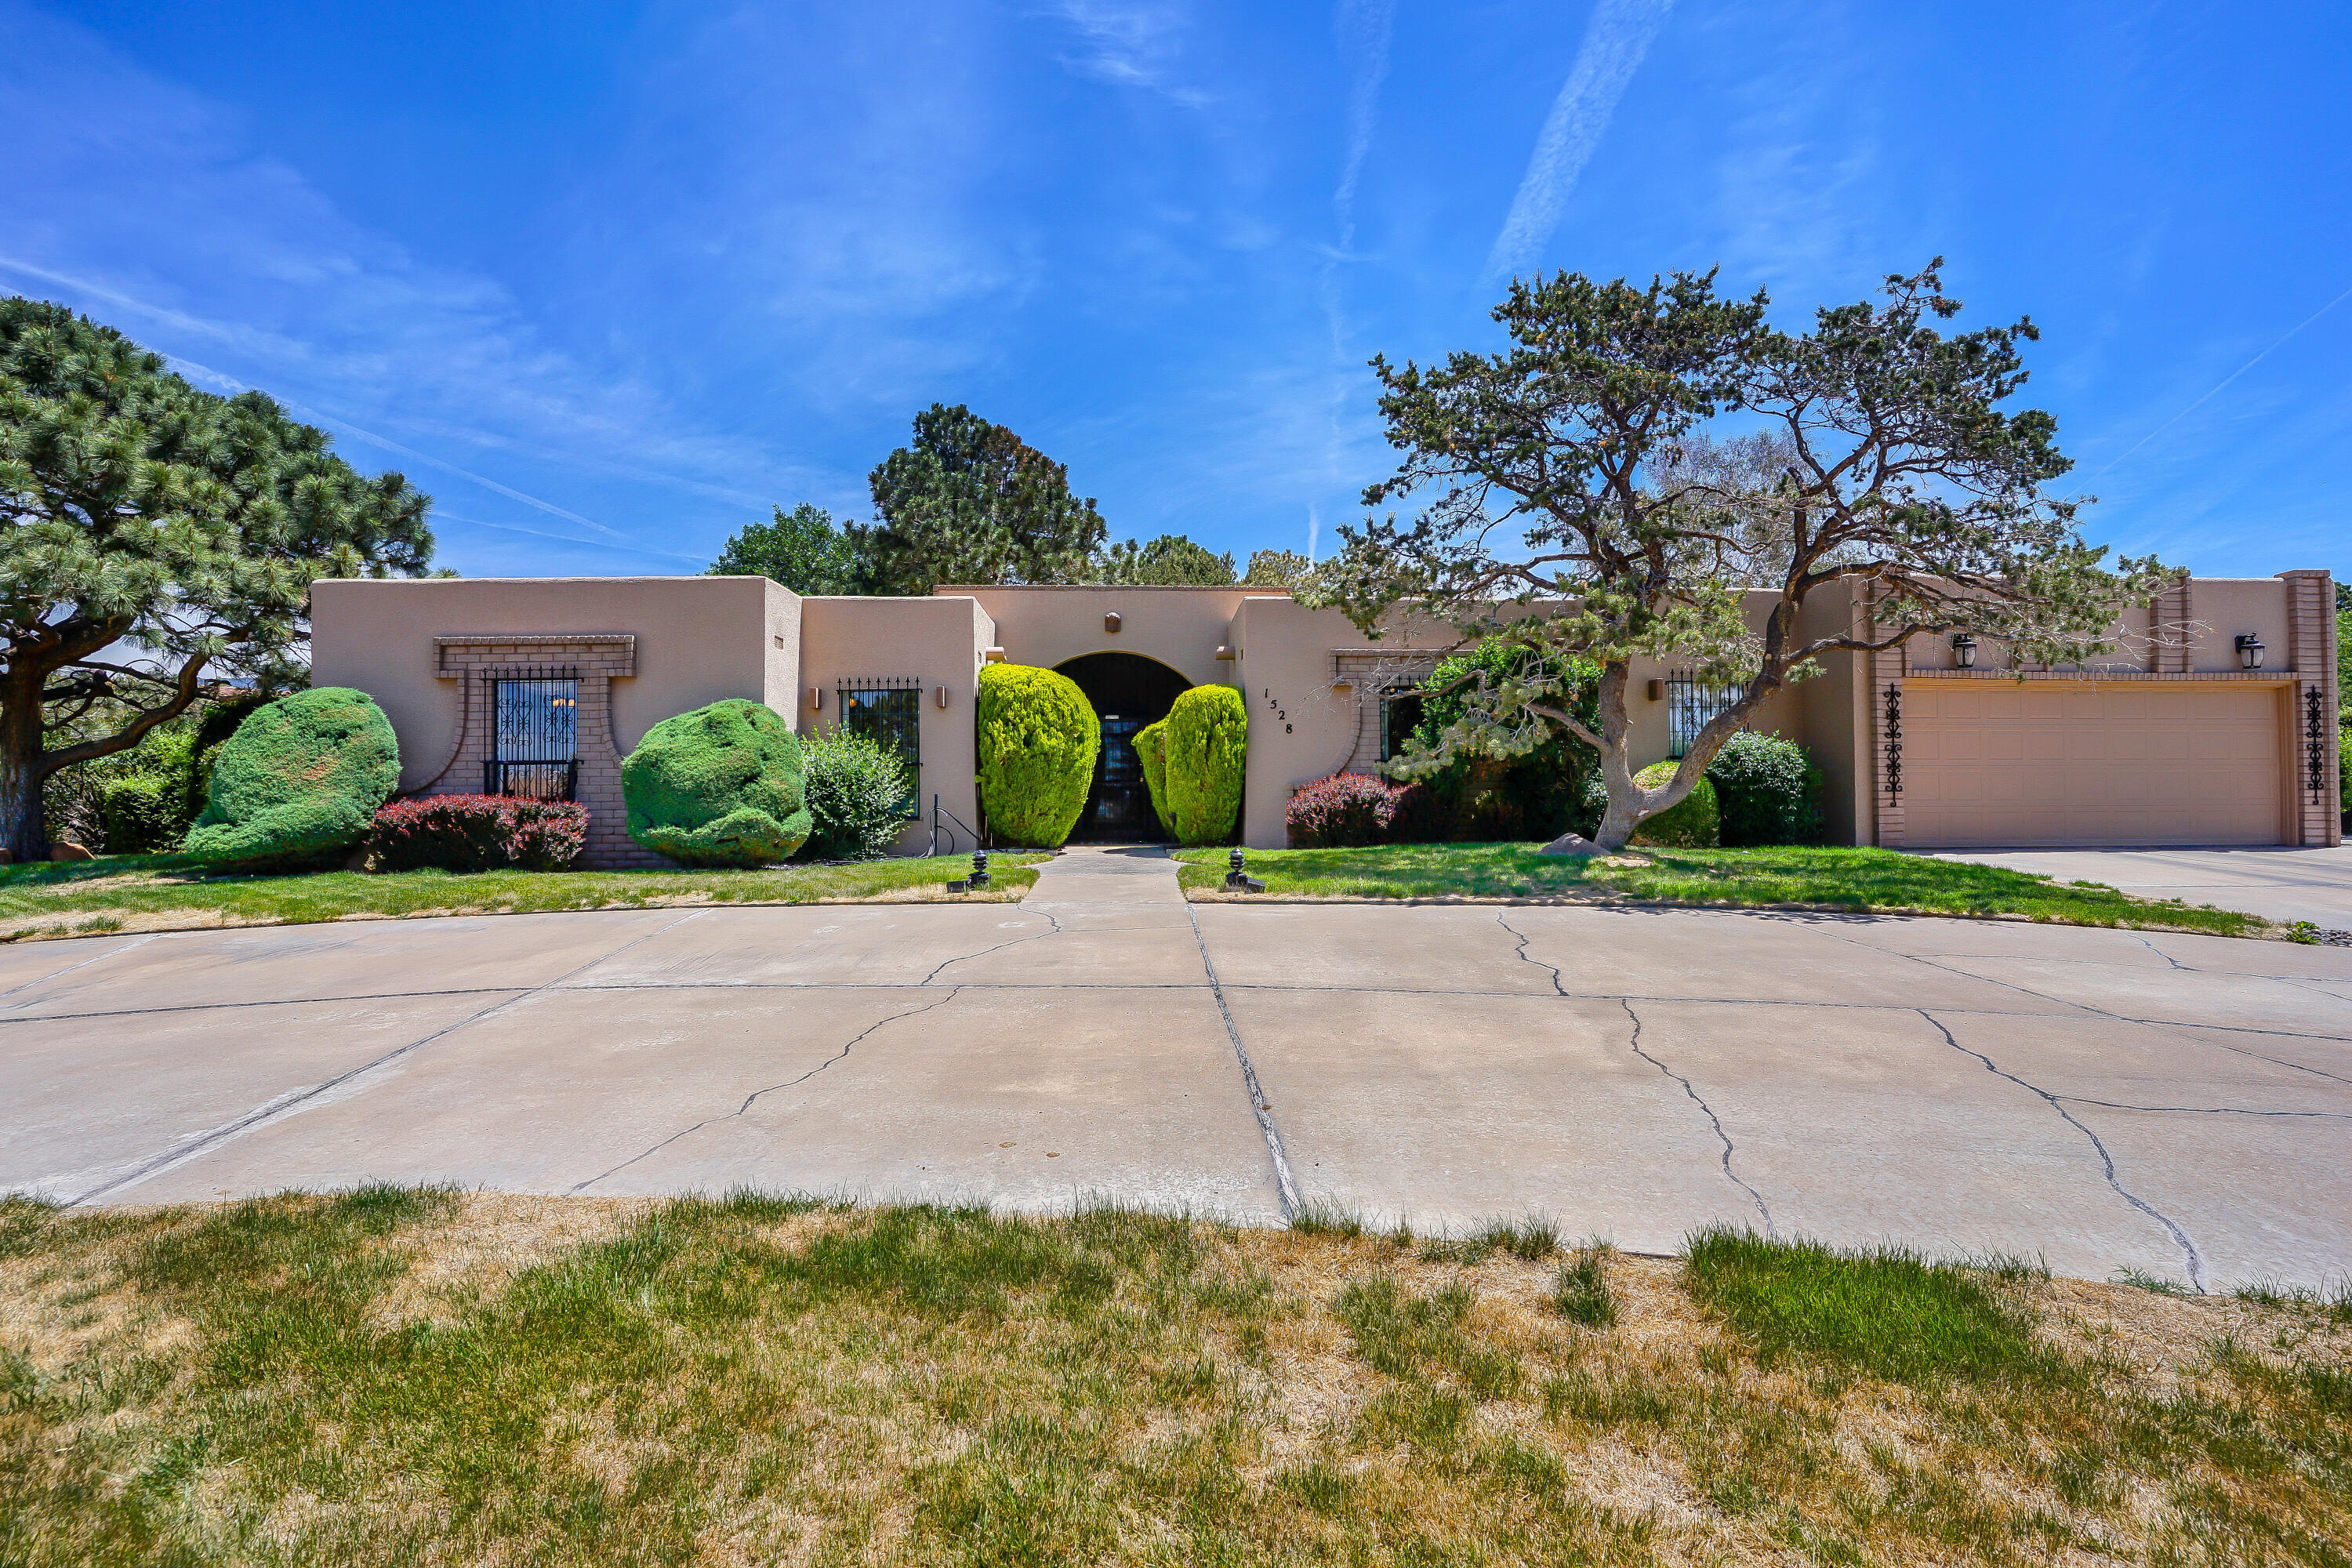 Don't miss this gem! Beautiful, well-kept 4 bedroom, 3 bath home located in the Four Hills neighborhood. Conveniently located near the freeway & shopping, this home offers 2 living areas, a large stone face fireplace, gorgeous kitchen with custom cabinets with plenty of storage & spacious bedrooms. Entertain in the lush backyard under the large covered patio. Make an appointment to see it today!